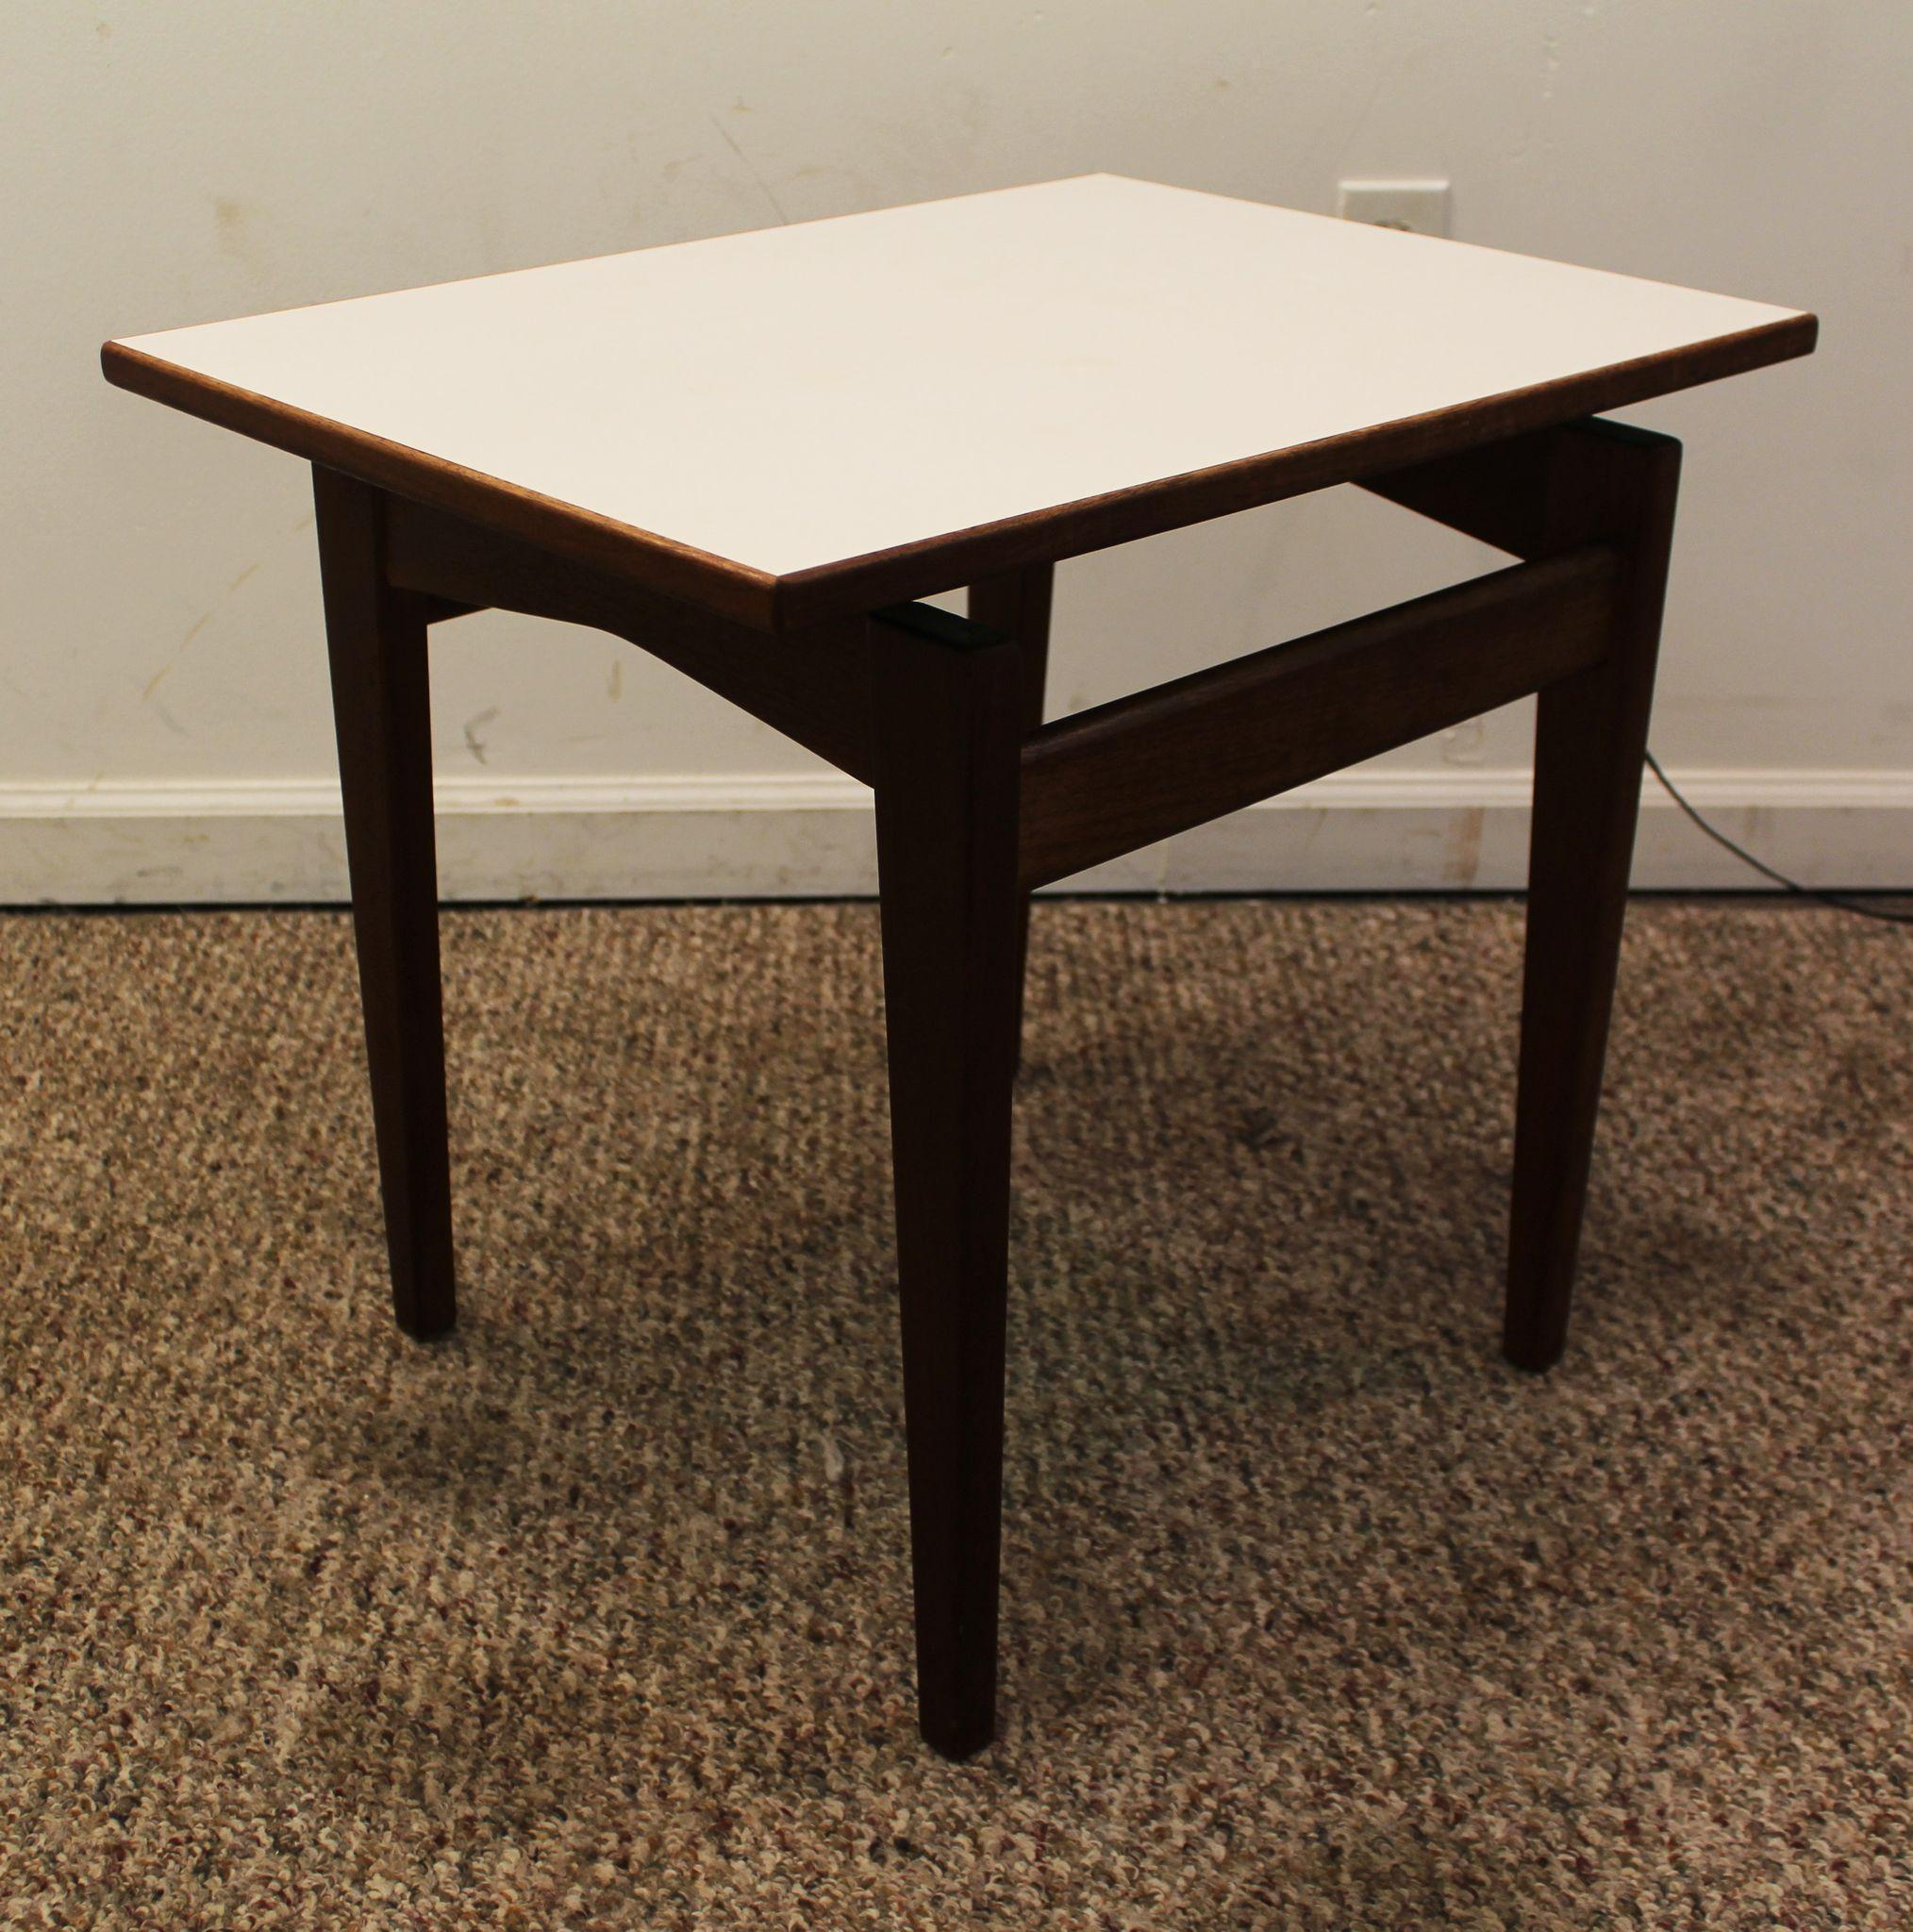 Floating Coffee Table Mid Century Danish Modern Floating Top Jens Risom Side Table From